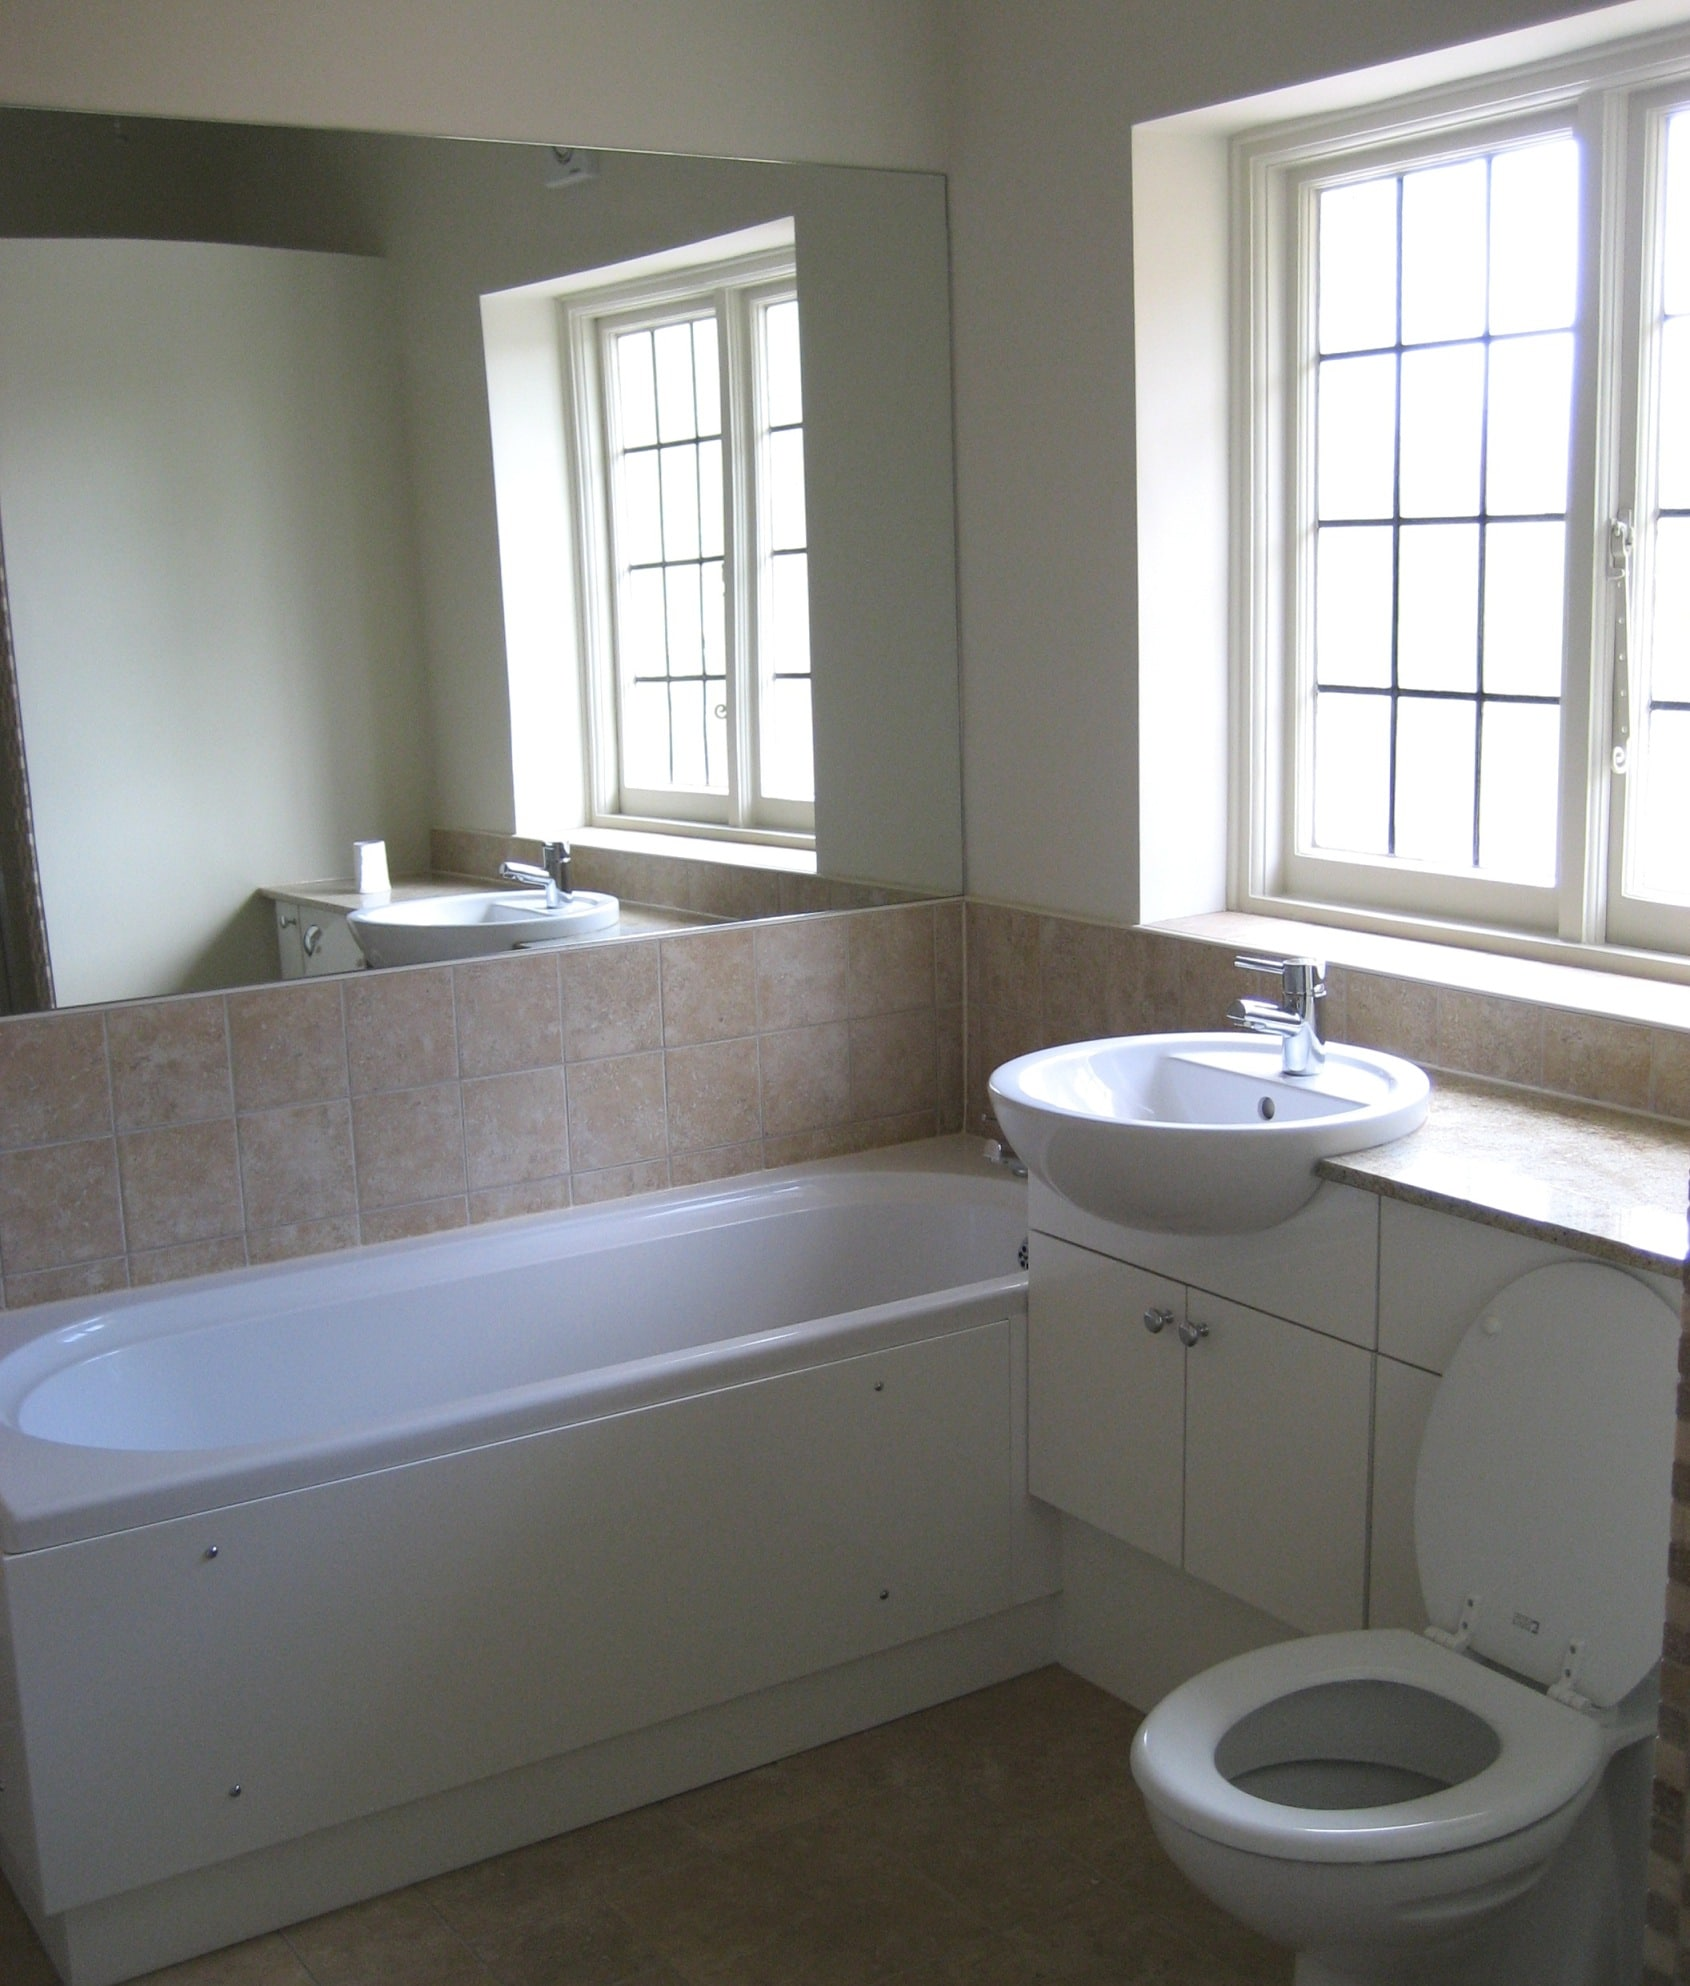 Bathrooms Gallery  Transforming Homes for over 30 years